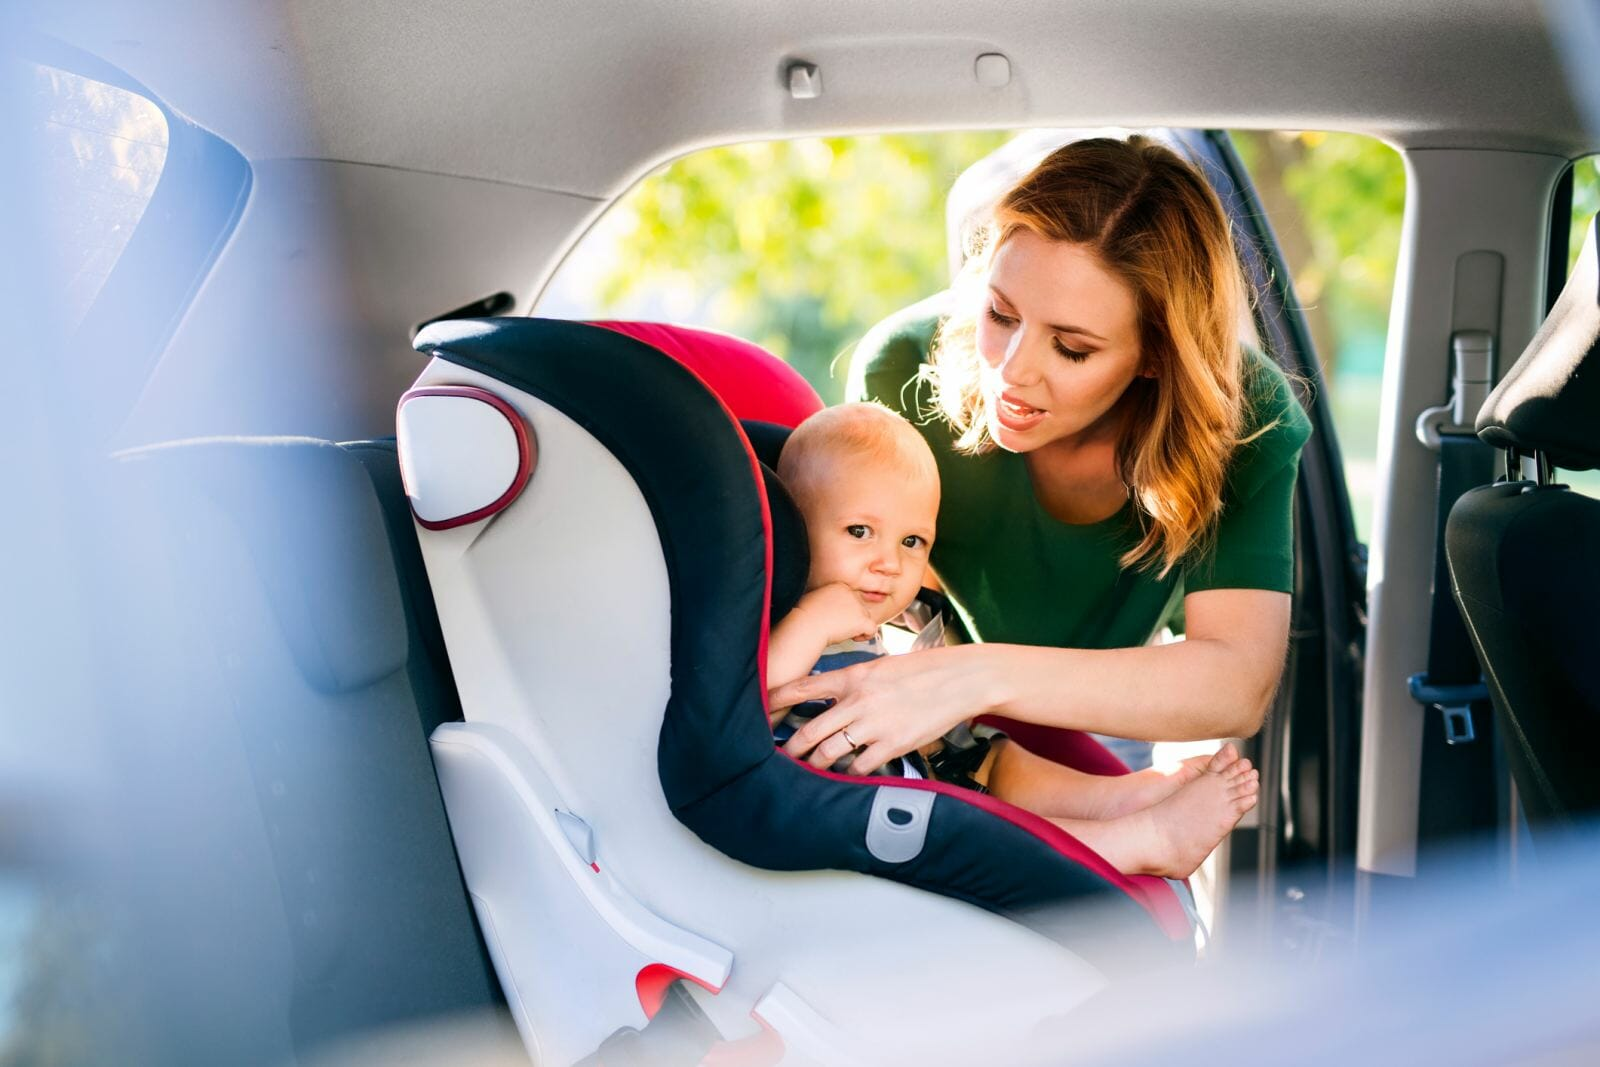 A mom helps her baby into a car seat